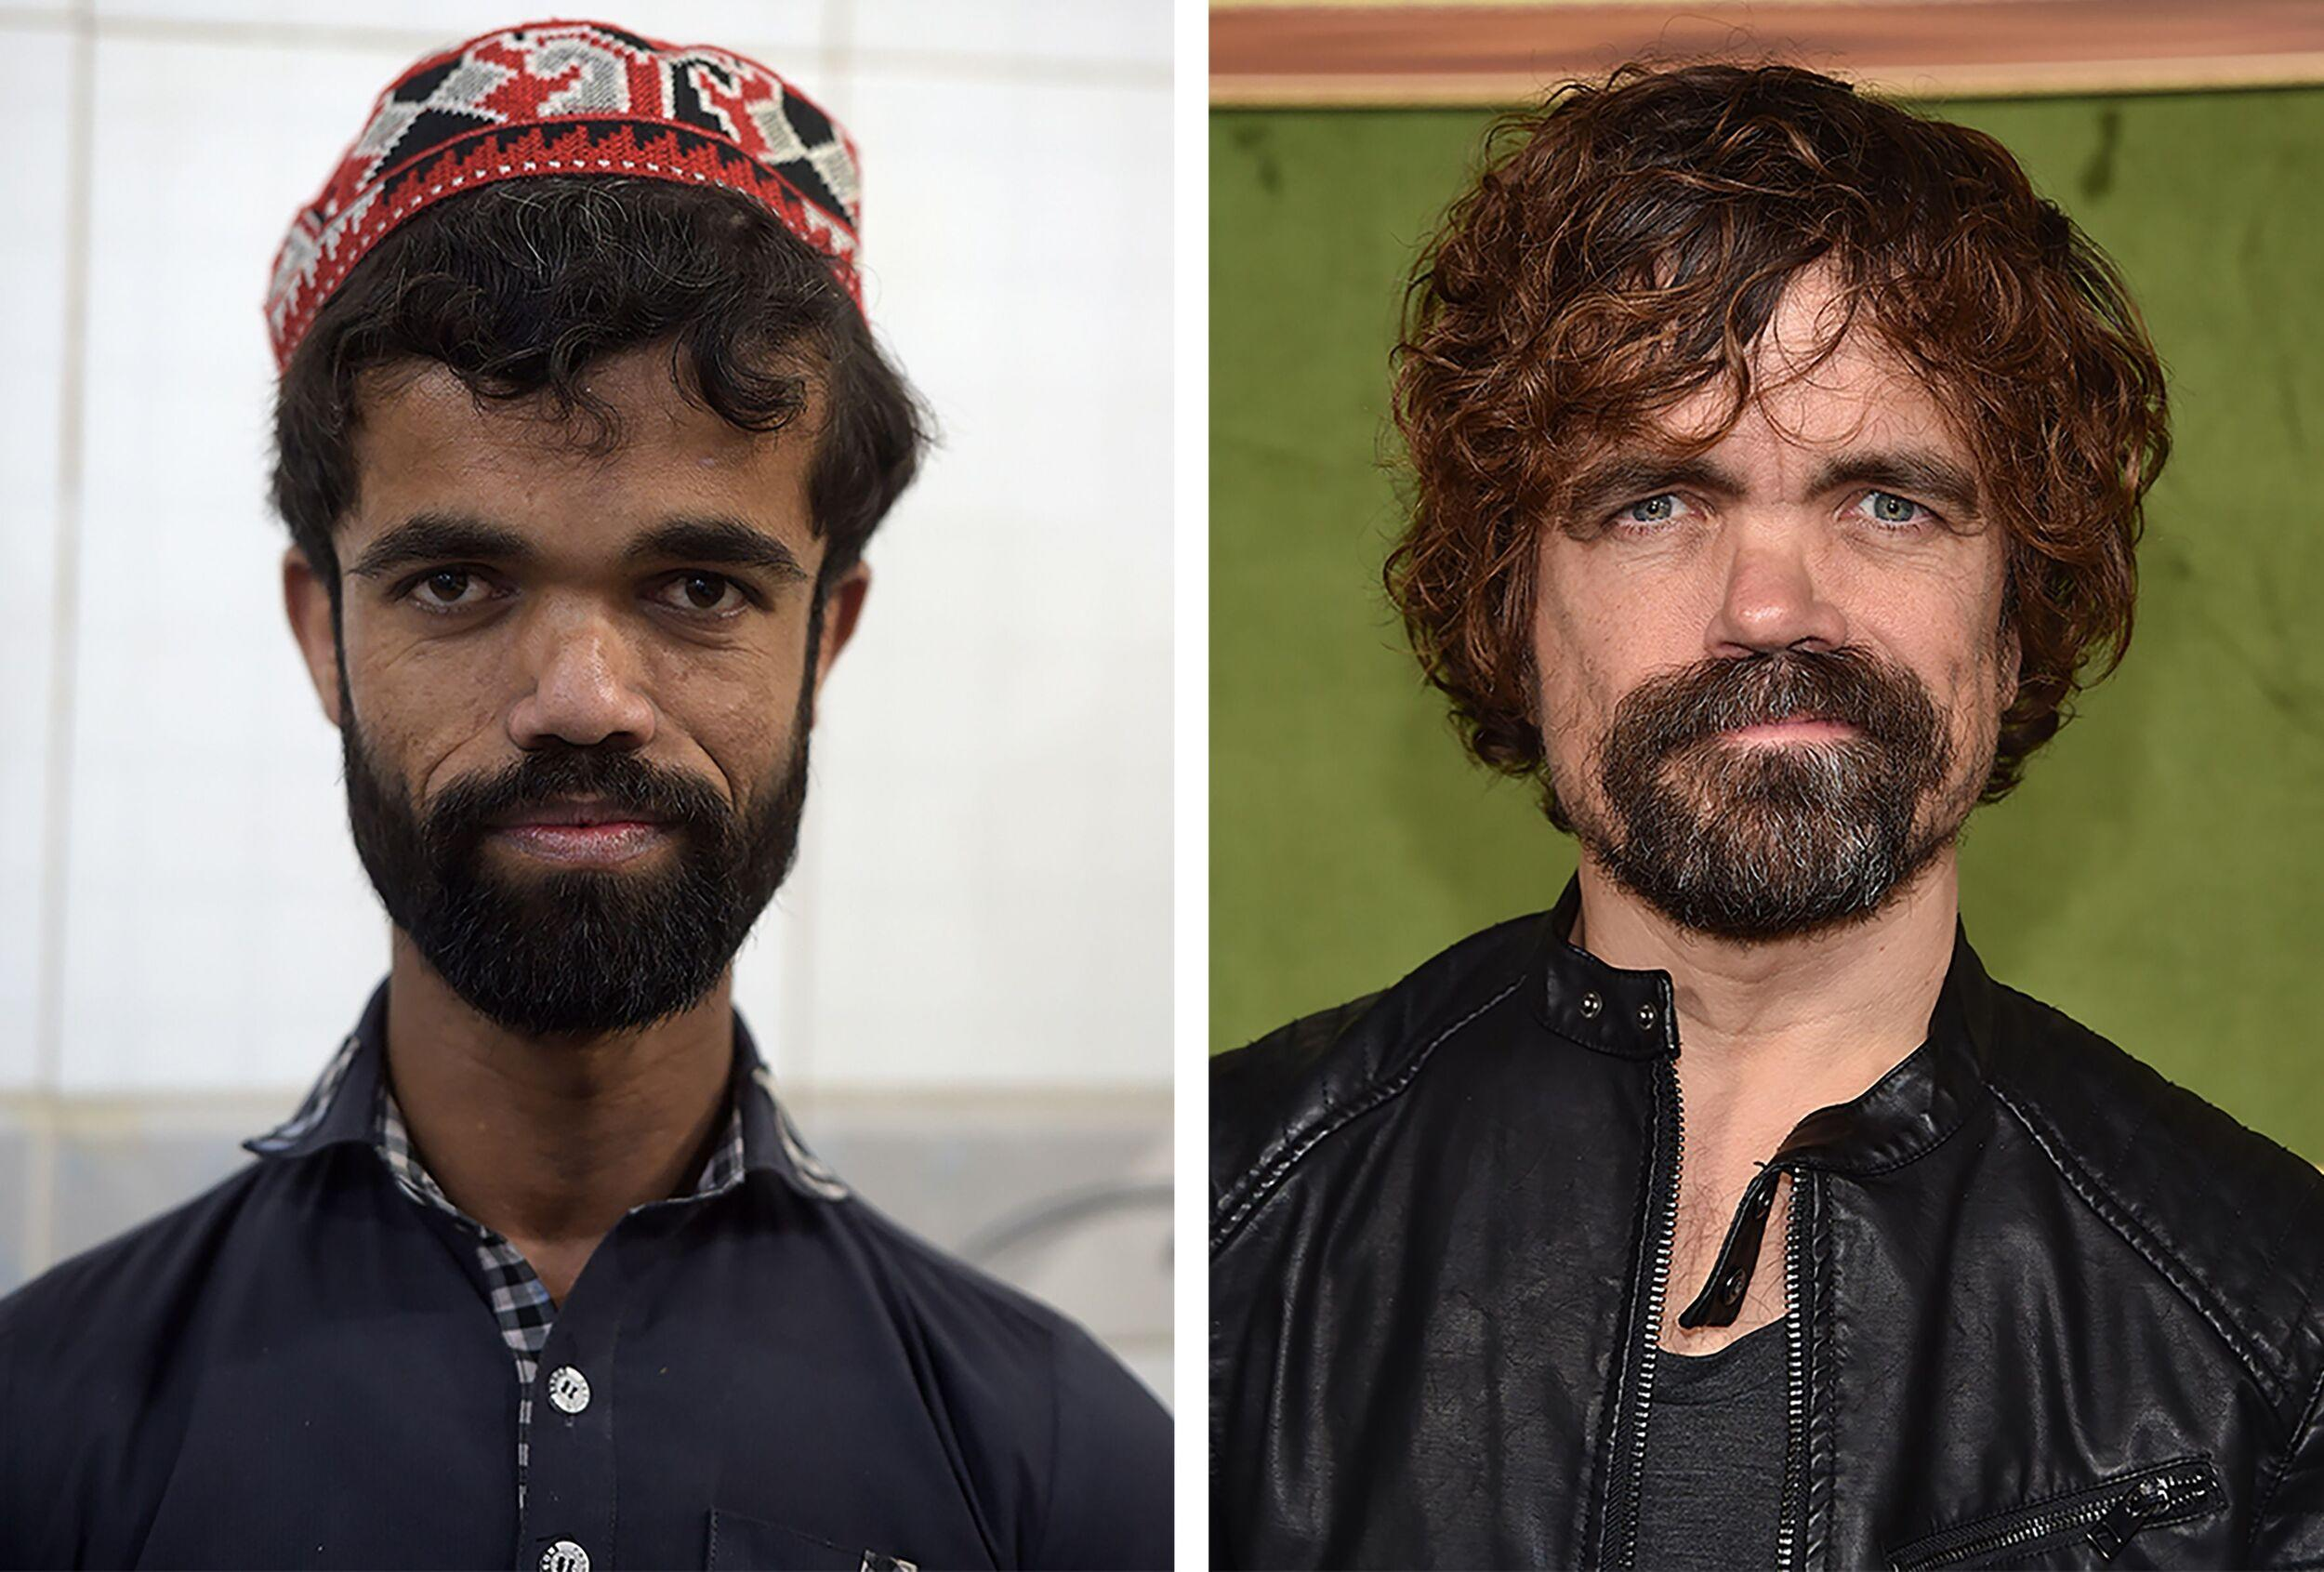 (COMBO) This photo combination created on March 14, 2019 shows (L) Pakistani waiter Rozi Khan posing for a photograph at Dilbar Hotel in Rawalpindi on February 22, (R) US actor Peter Dinklage at the HBO premiere of 'My Dinner With Herve' at the Paramount Studios in Los Angeles on October 4, 2018. - Rozi Khan had never heard of the Game of Thrones -- or its hugely popular character Tyrion Lannister -- until his striking resemblance to the dwarf anti-hero got heads turning at home. (Photo by Aamir QURESHI and Chris DELMAS / AFP) / To go with PAKISTAN-LIFESTYLE-TELEVISION-ENTERTAINMENT (Photo credit should read AAMIR QURESHI,CHRIS DELMAS/AFP/Getty Images)